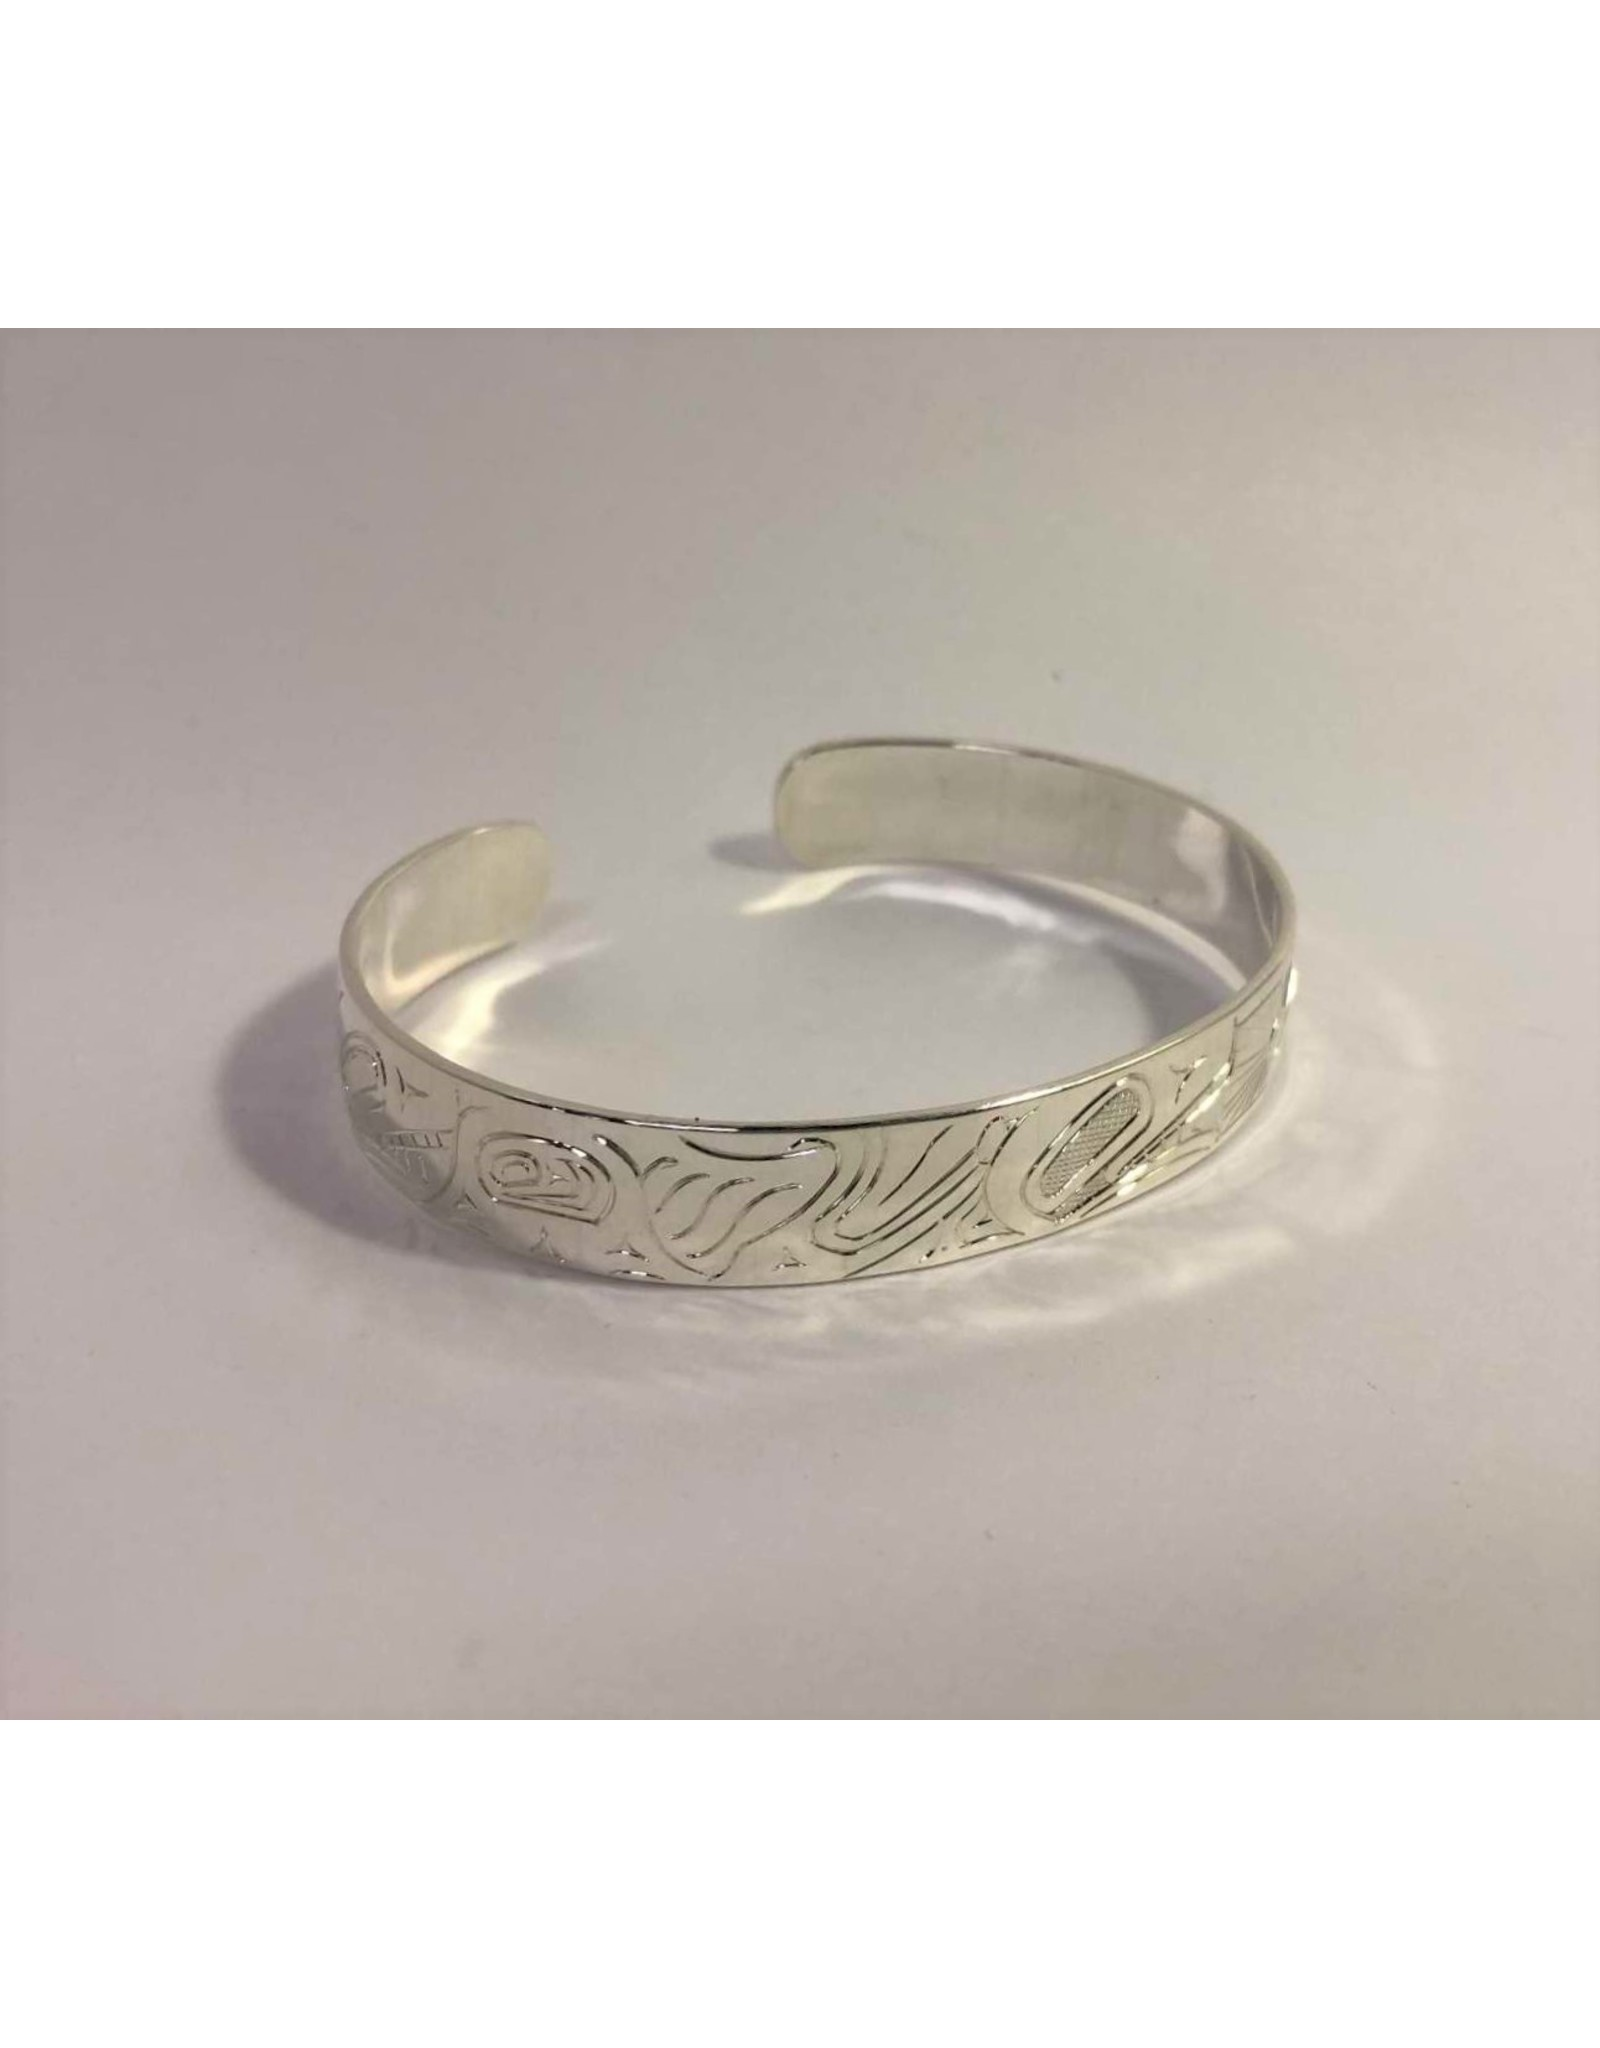 Bracelet - carved silver Sandi McKay First Nations 3 Killer Whales, 3 Salmon, and the Sun